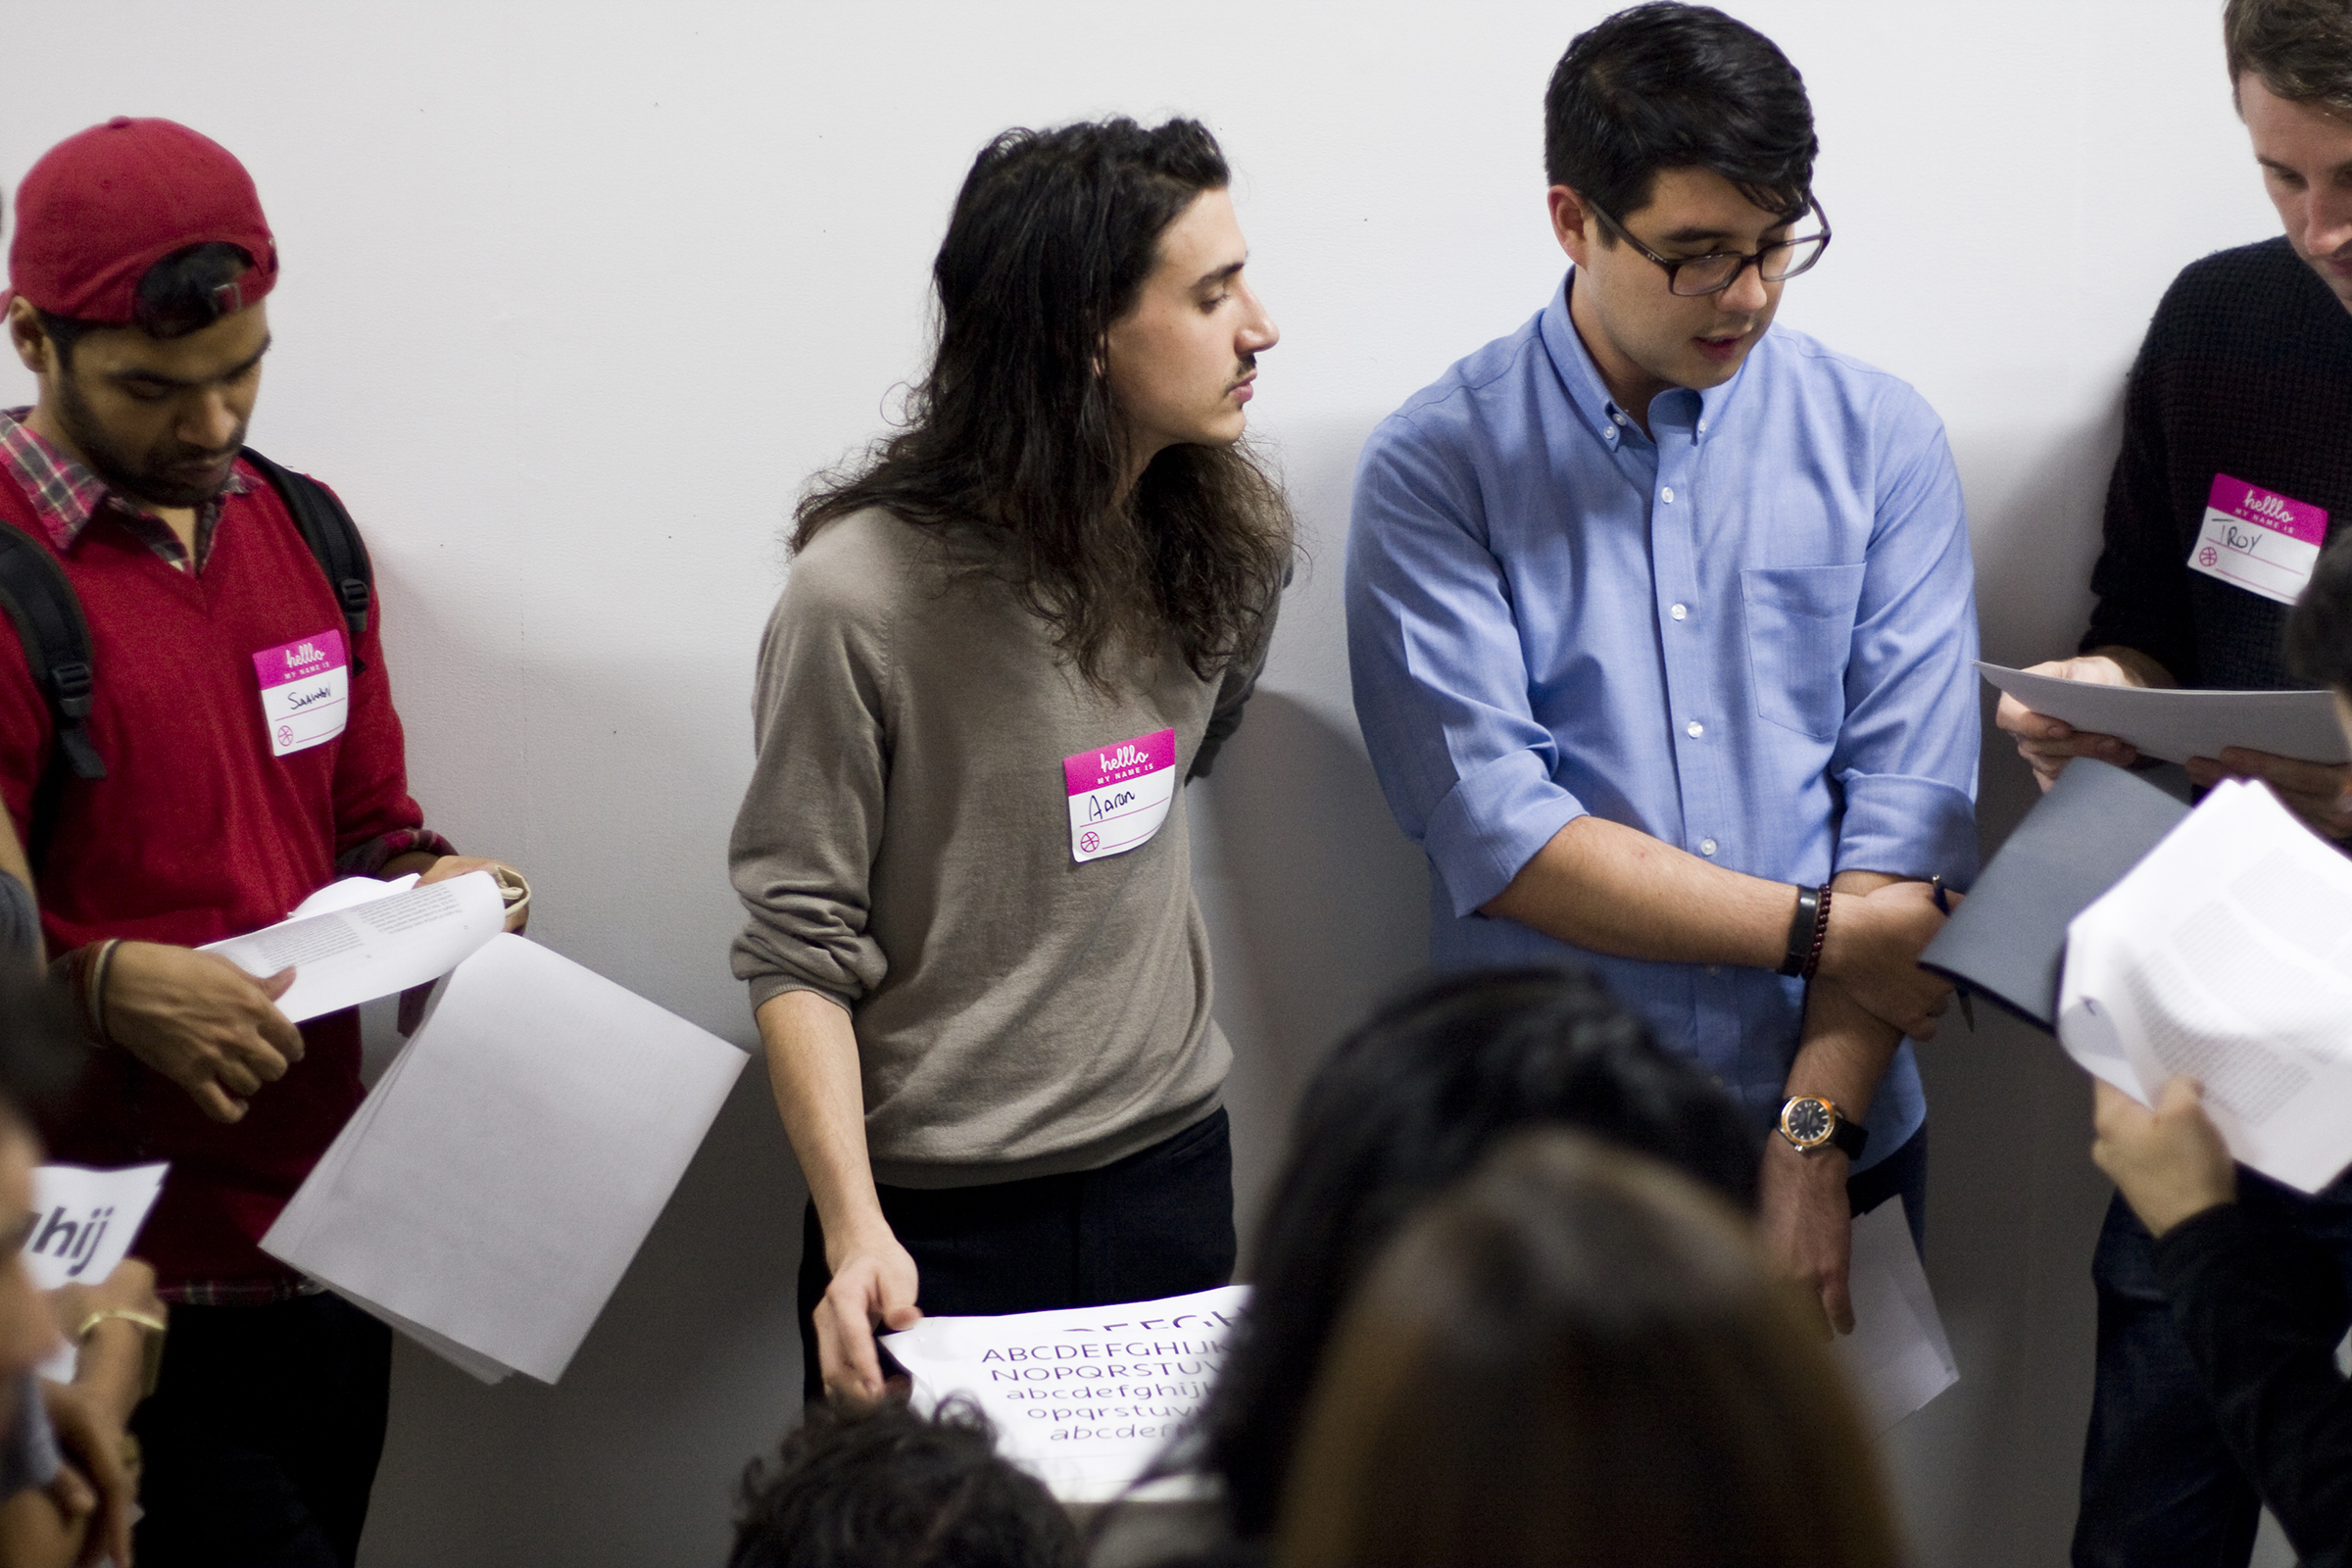 Aaron (center) listening to feedback on their project while the attendees look at their printed samples. November, 2015